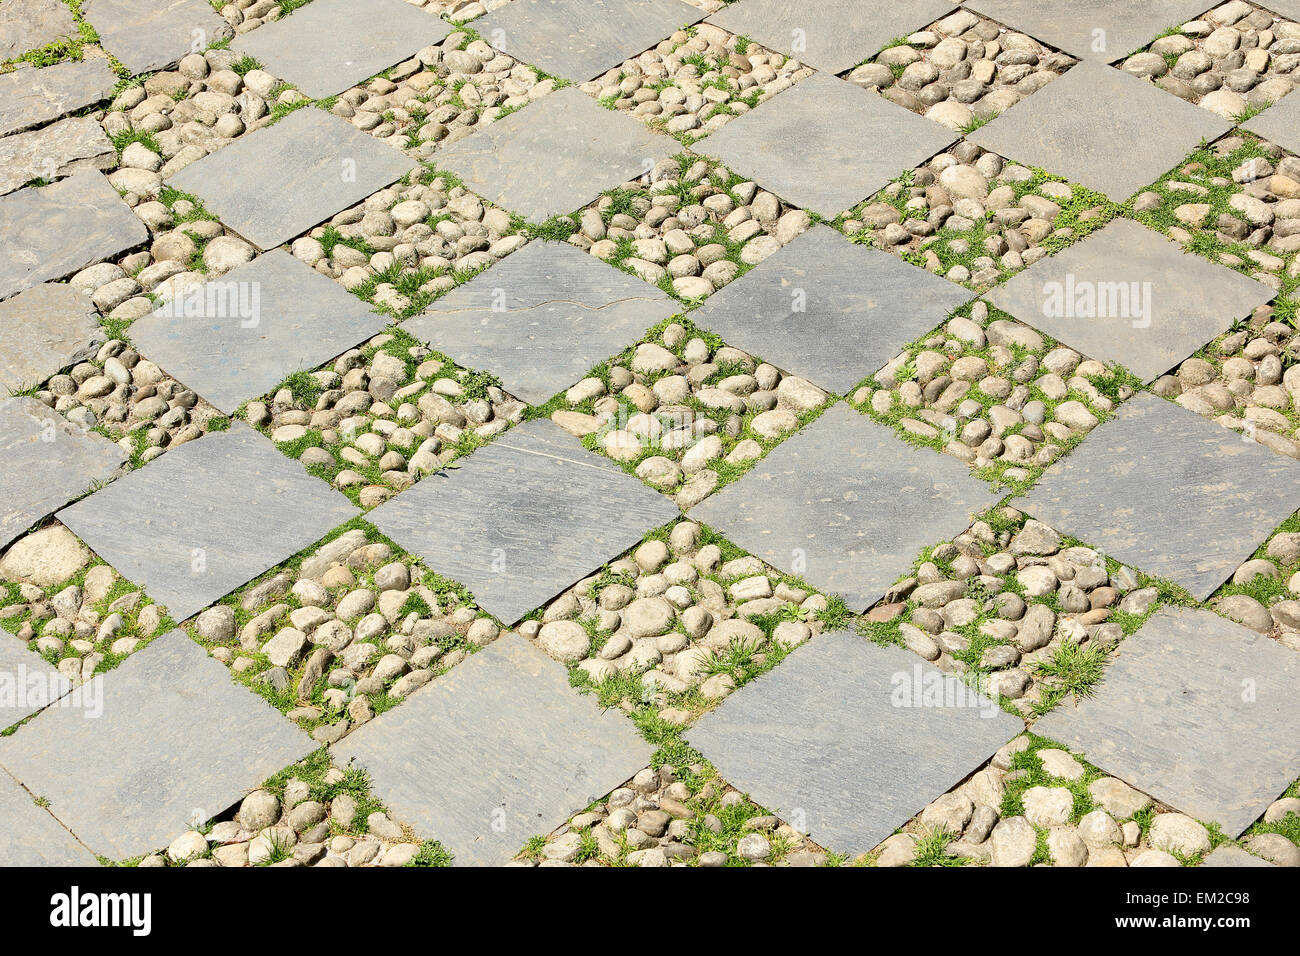 Texture of paving slabs, background. Everest region, Nepal. - Stock Image